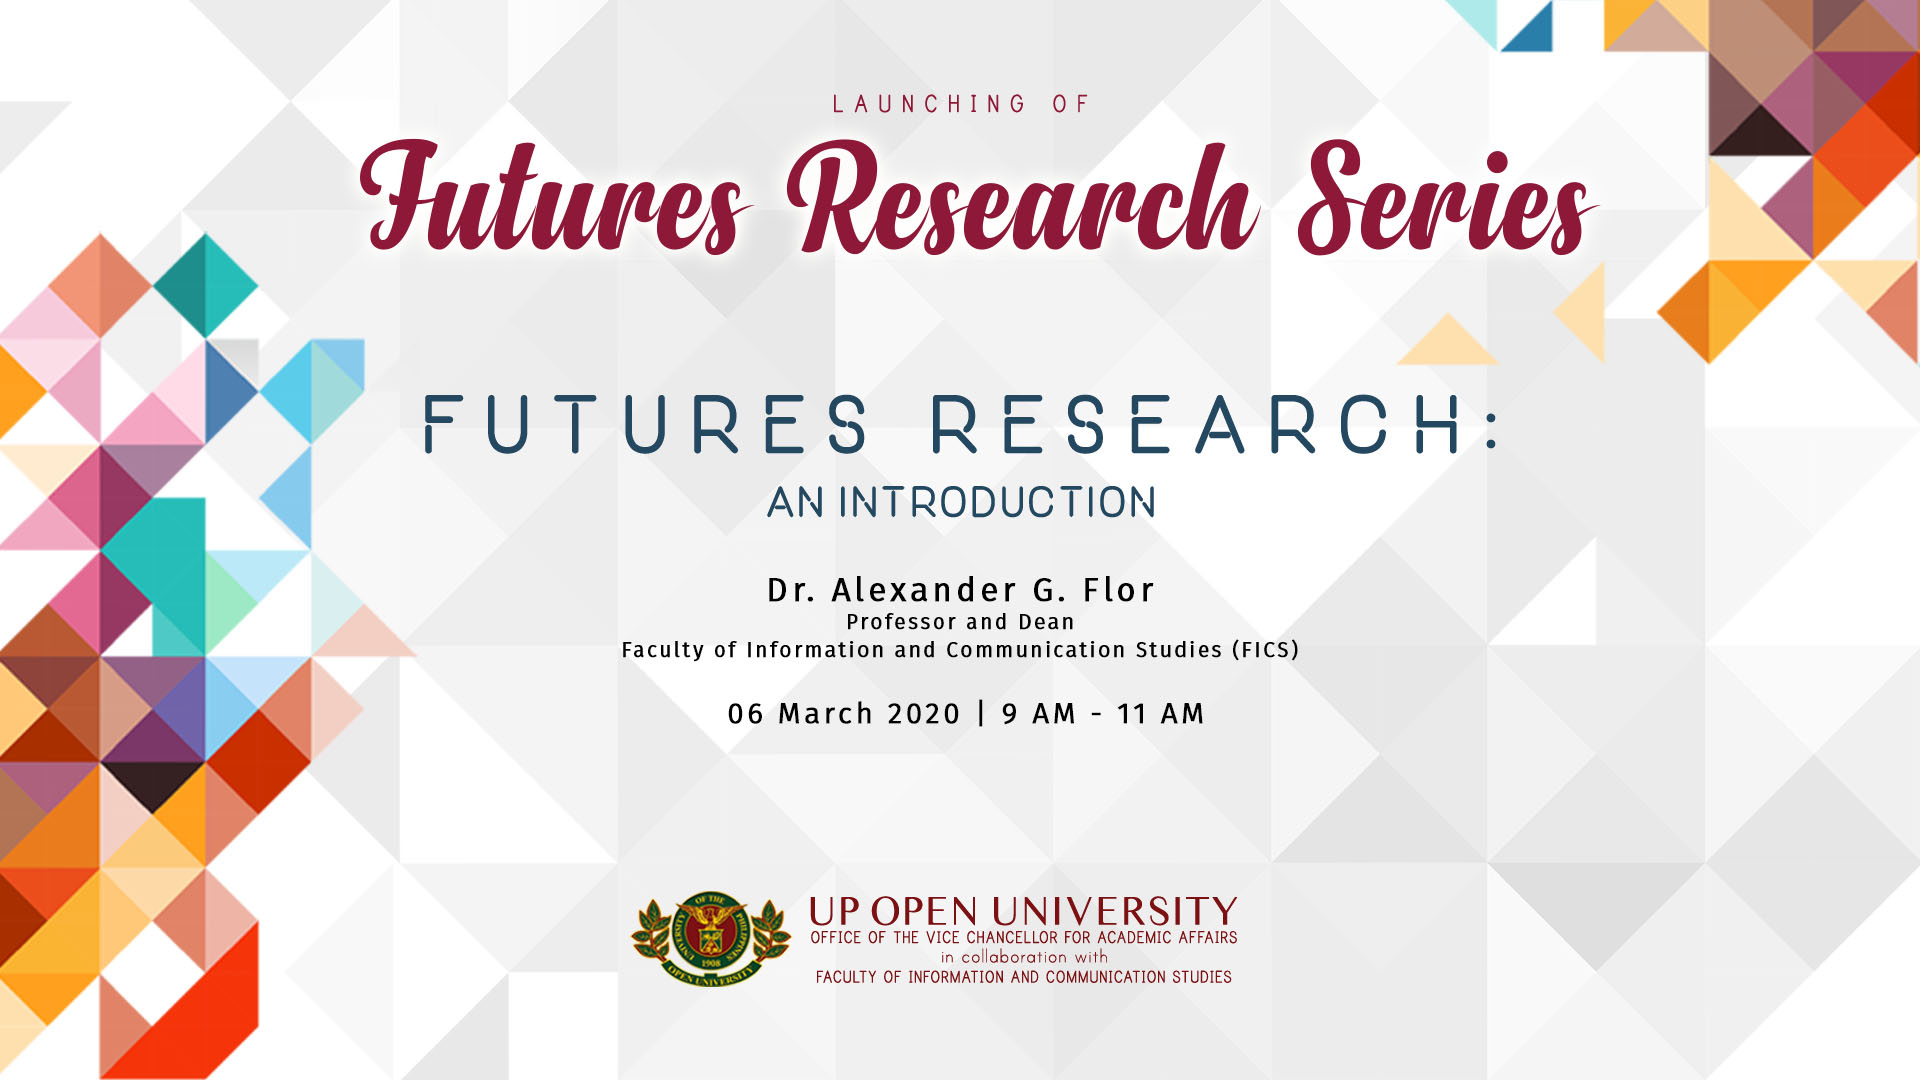 Futures Research Series